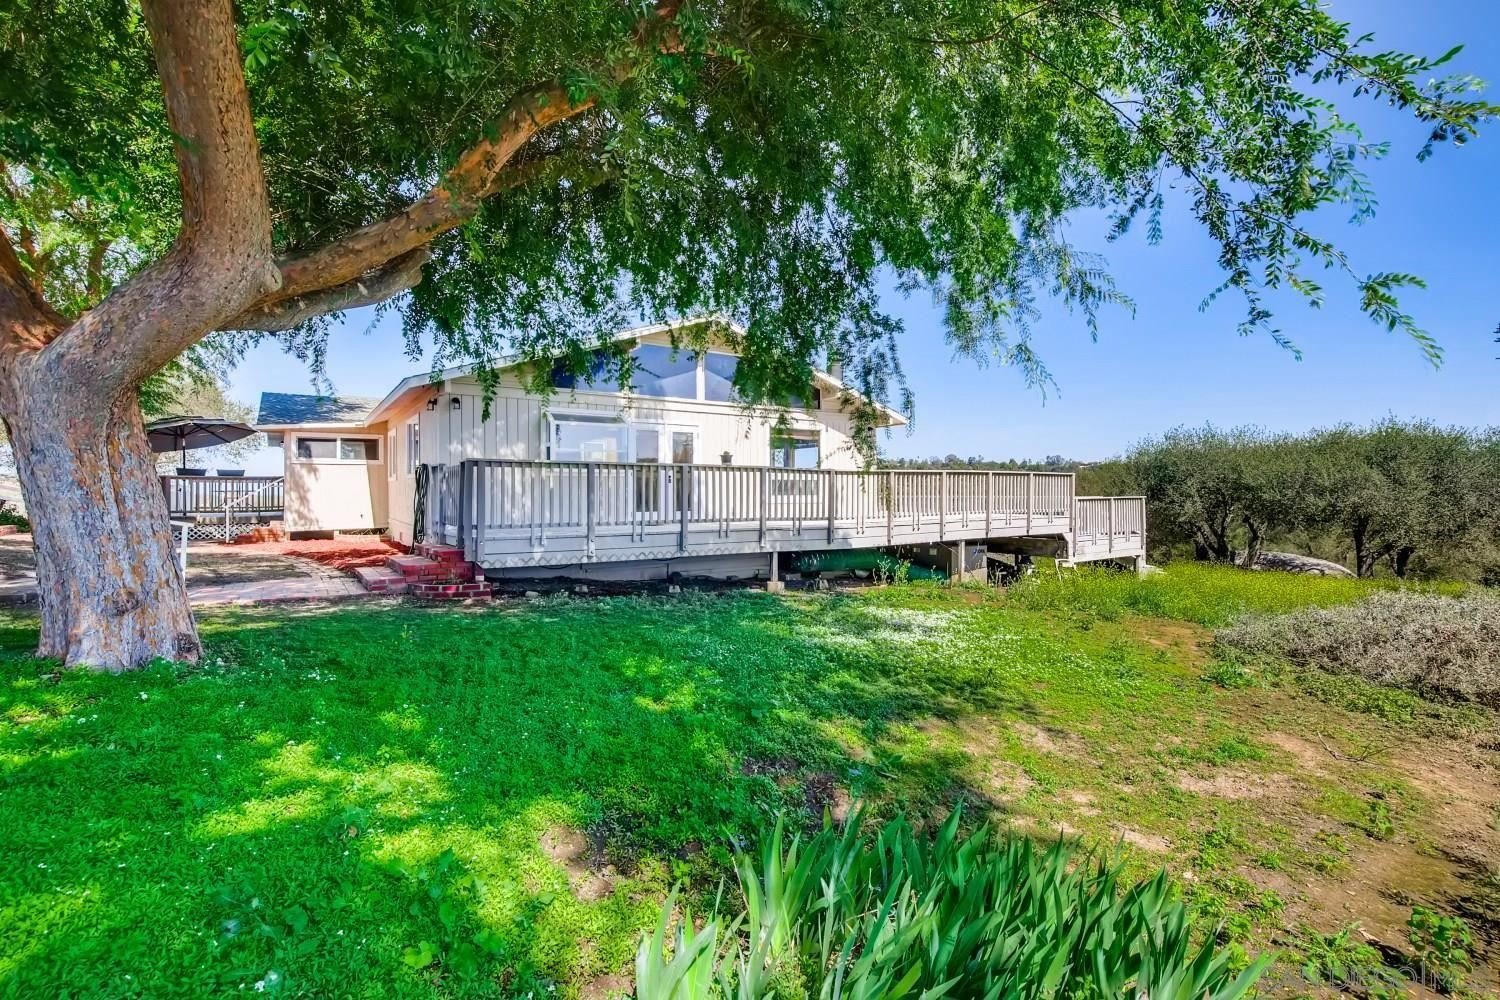 Photo of 13735 Hilldale, Valley Center, CA 92082 (MLS # 210015340)